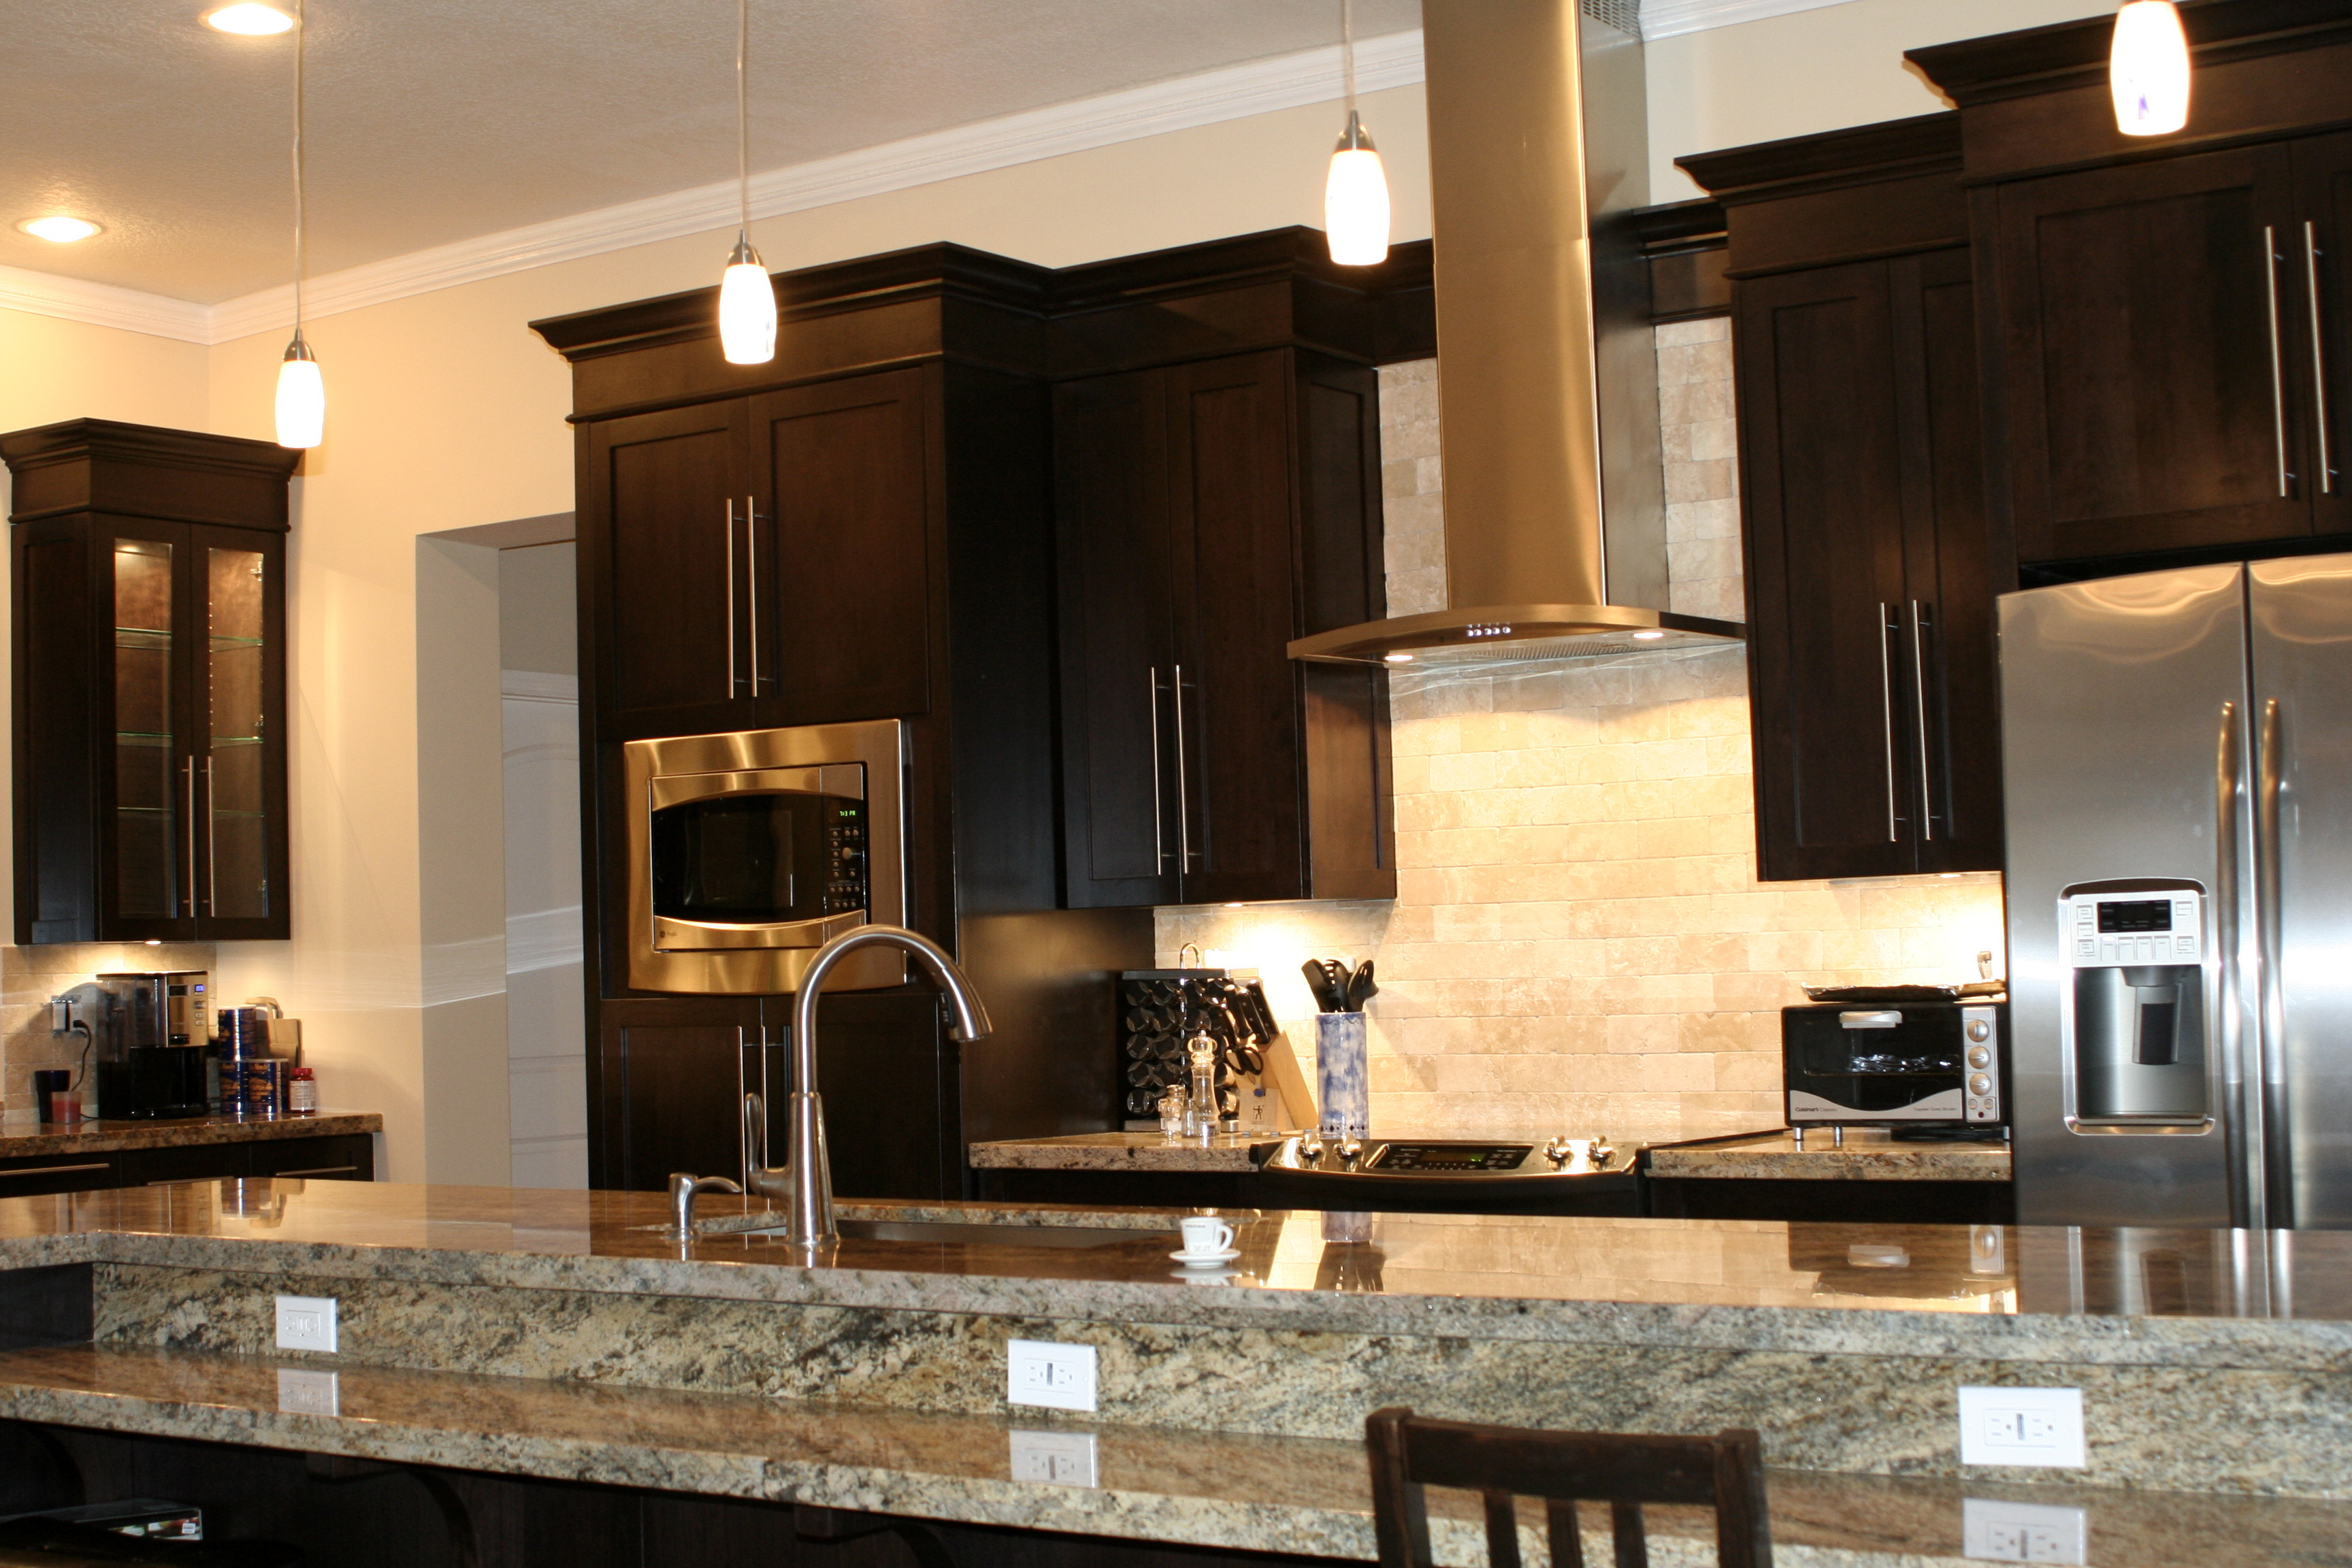 galleries doc kitchen ocala remodeling restorations s fl remodels all